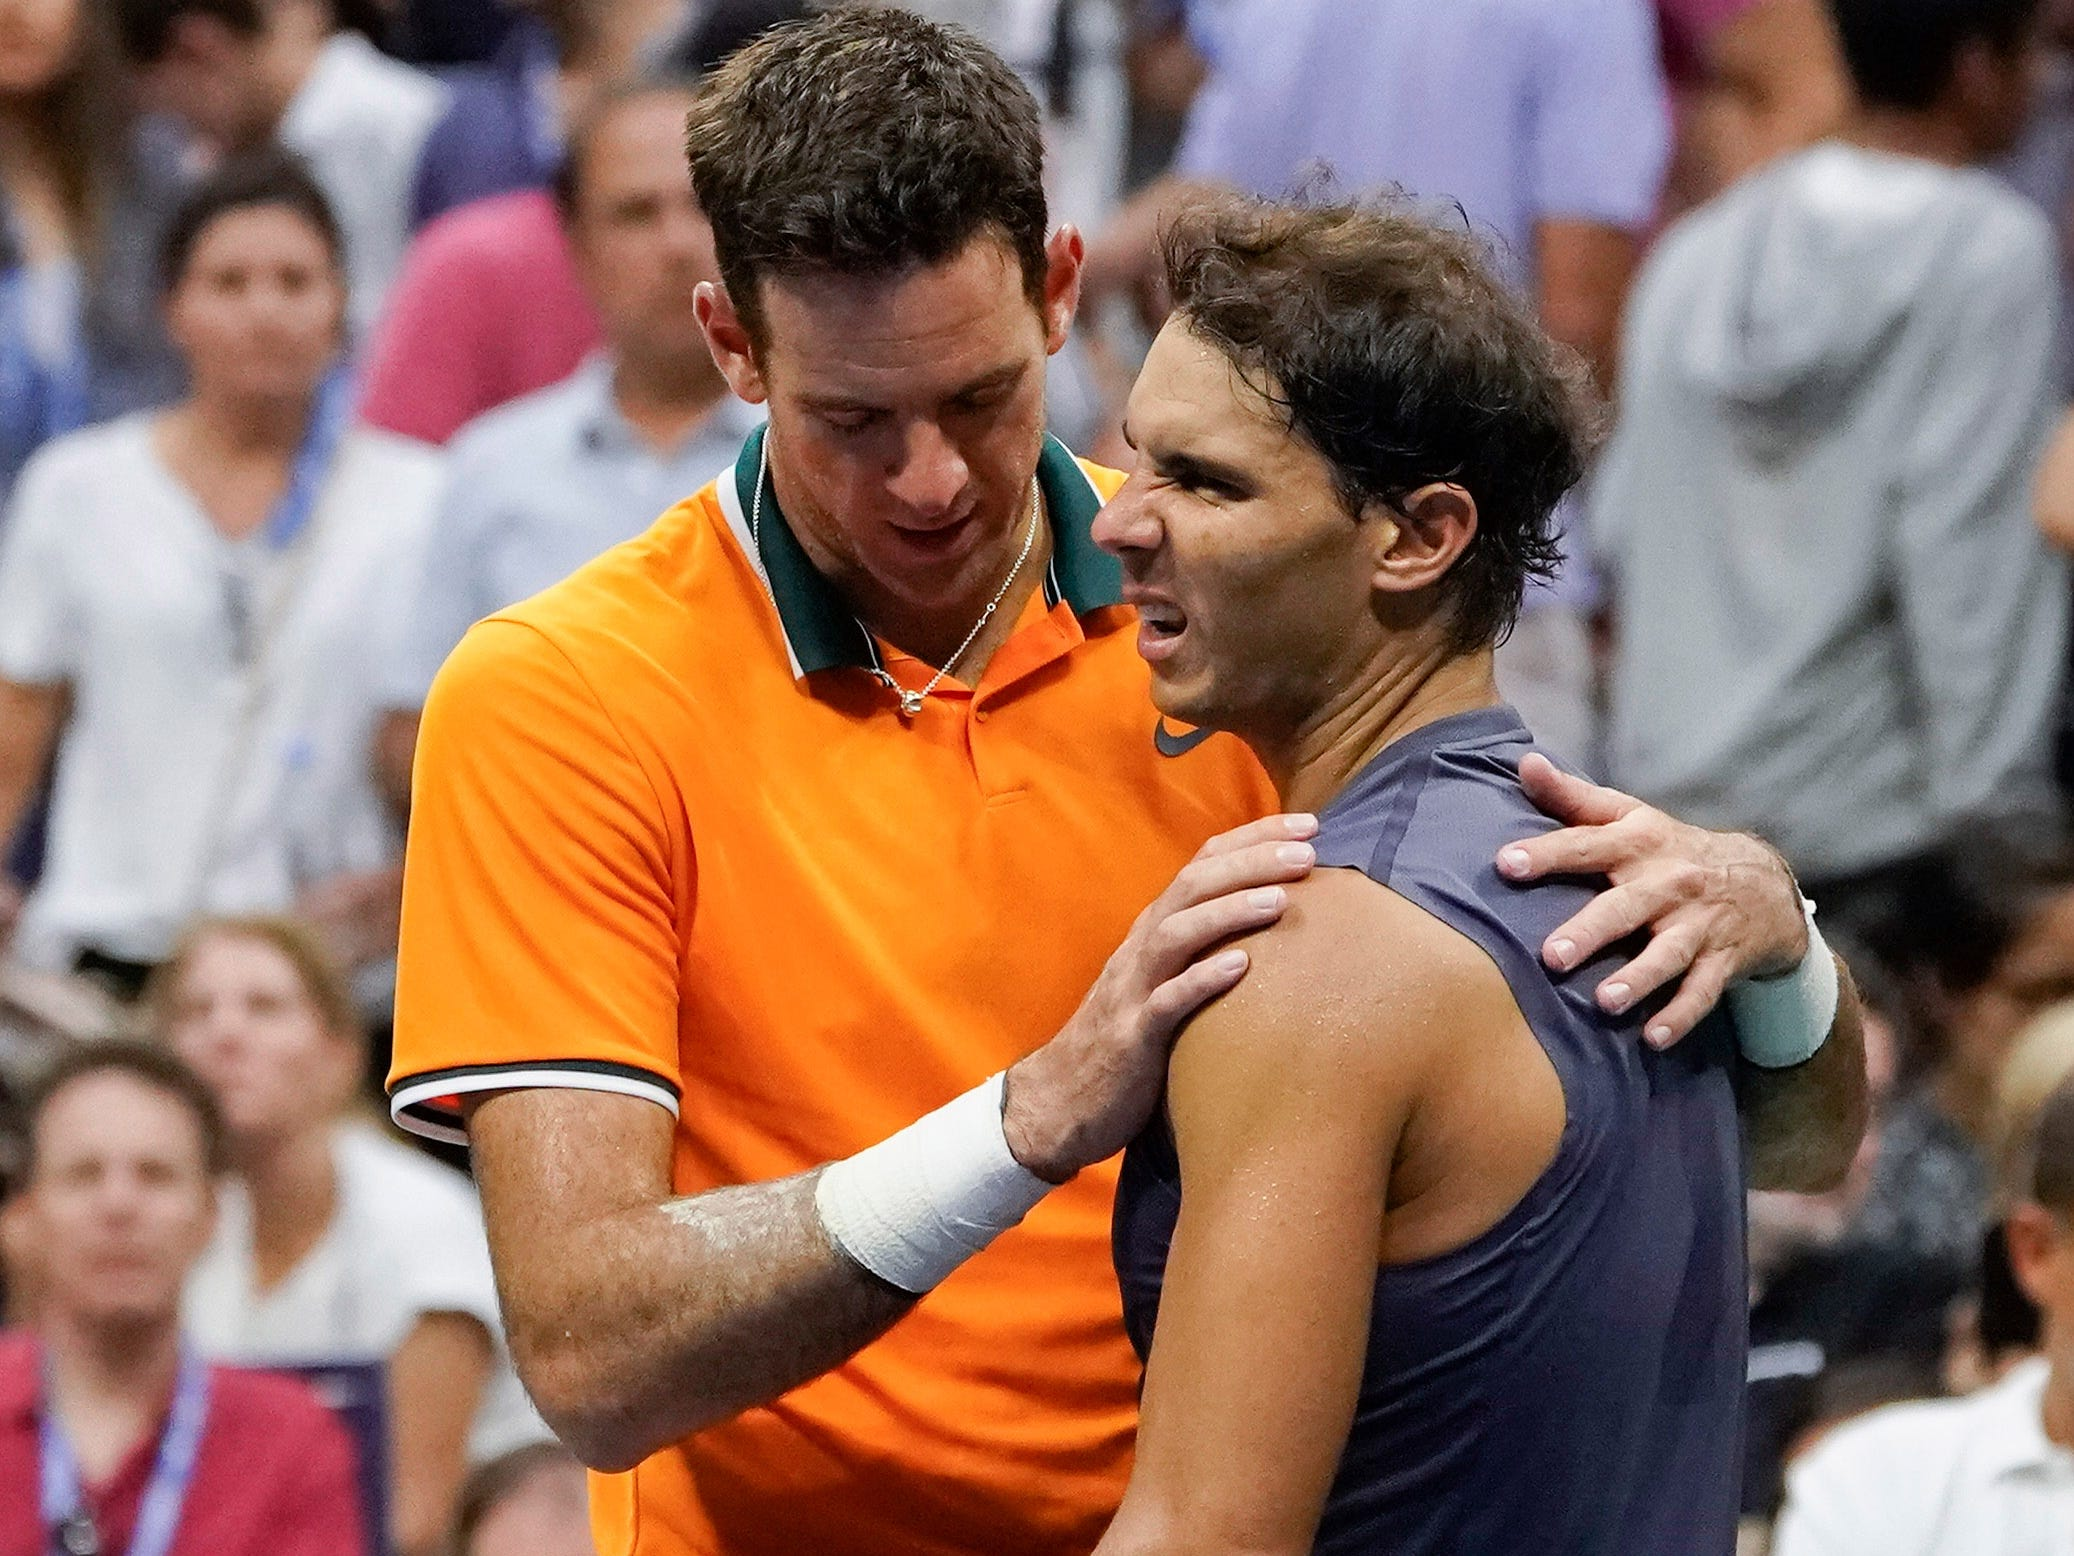 Rafael Nadal, right, greets Juan Martin del Potro after Nadal retired from the men's semifinal with a knee injury.